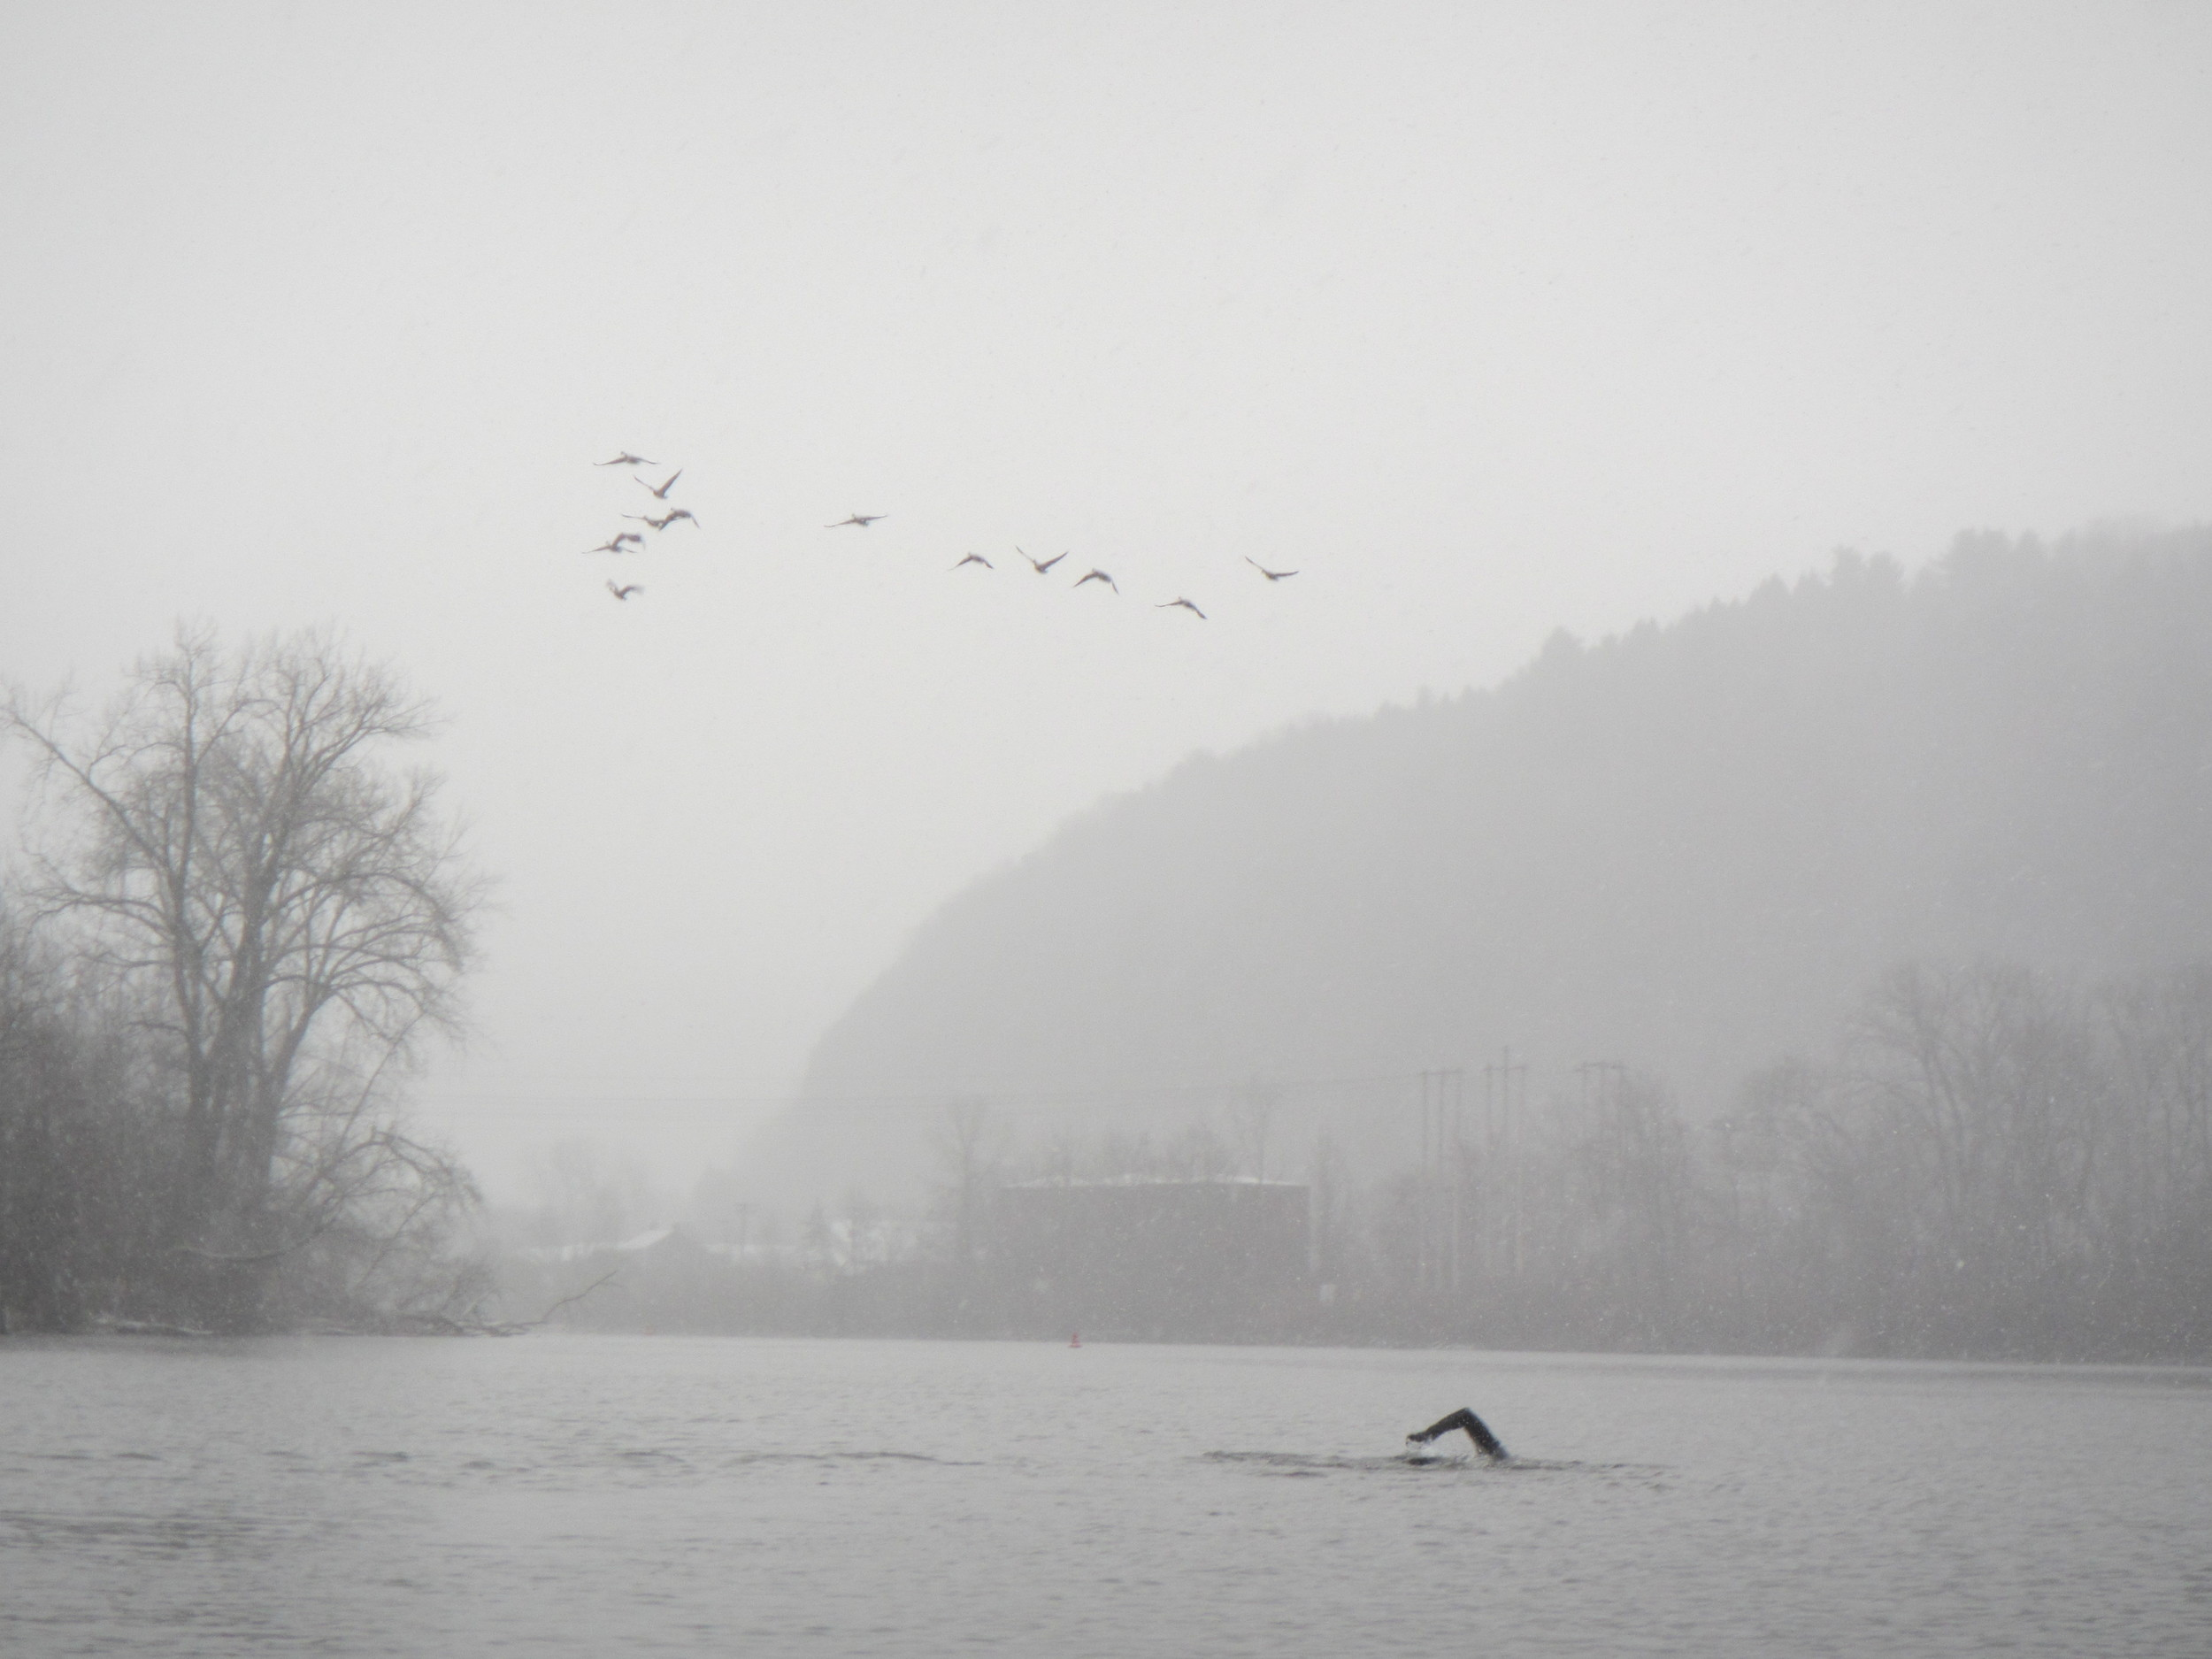 That's me, swimming into Little Falls, NY in a snowstorm, in 36 degree water. I love this river, and I will keep going until I swim its entire length.